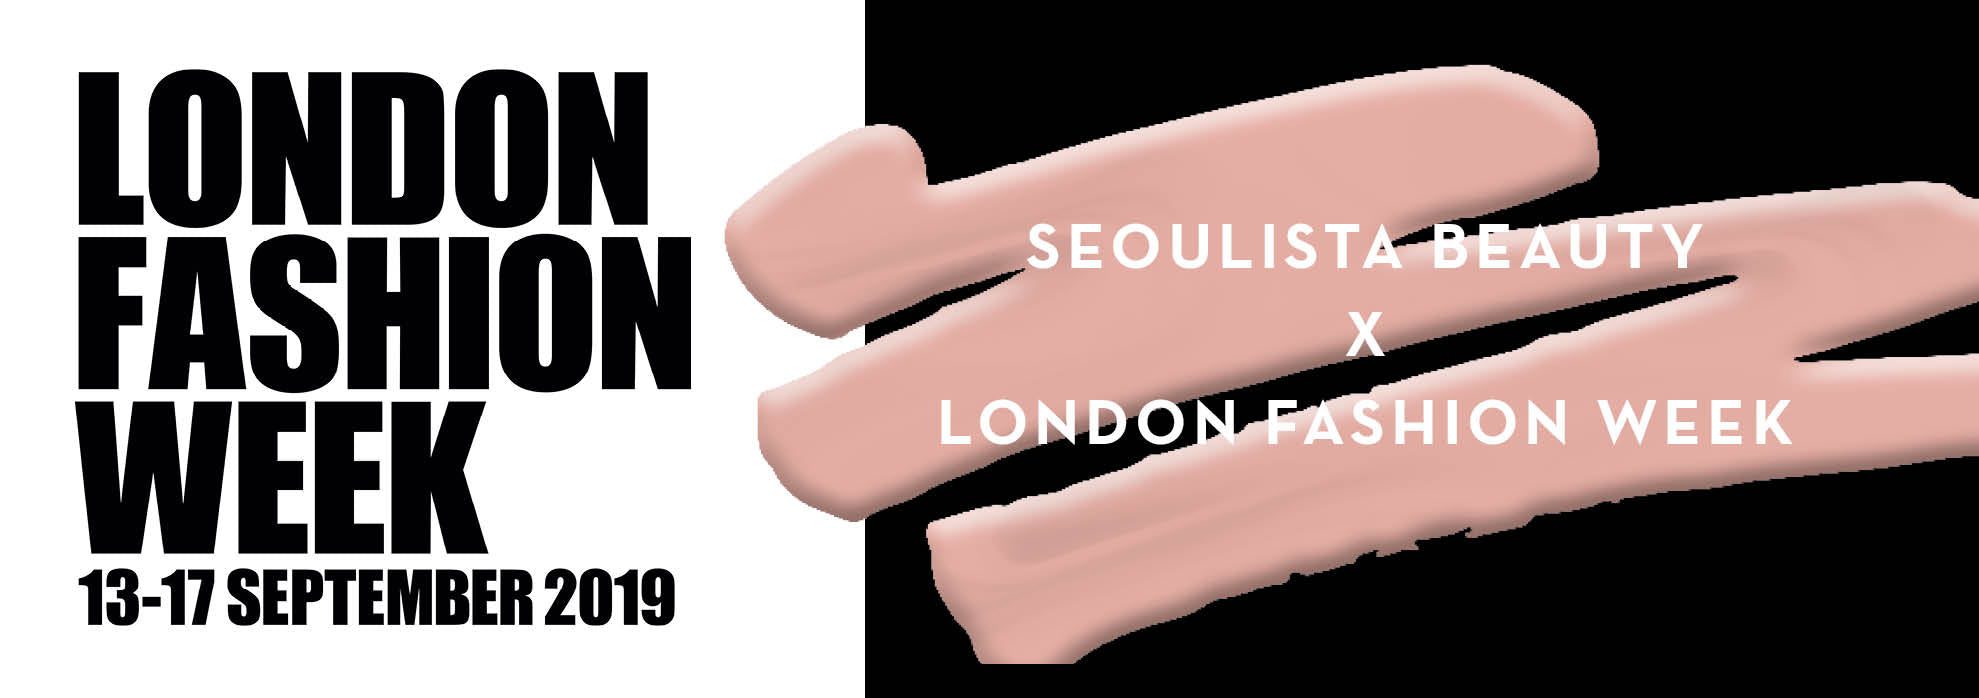 London Fashion Week Seoulista Beauty